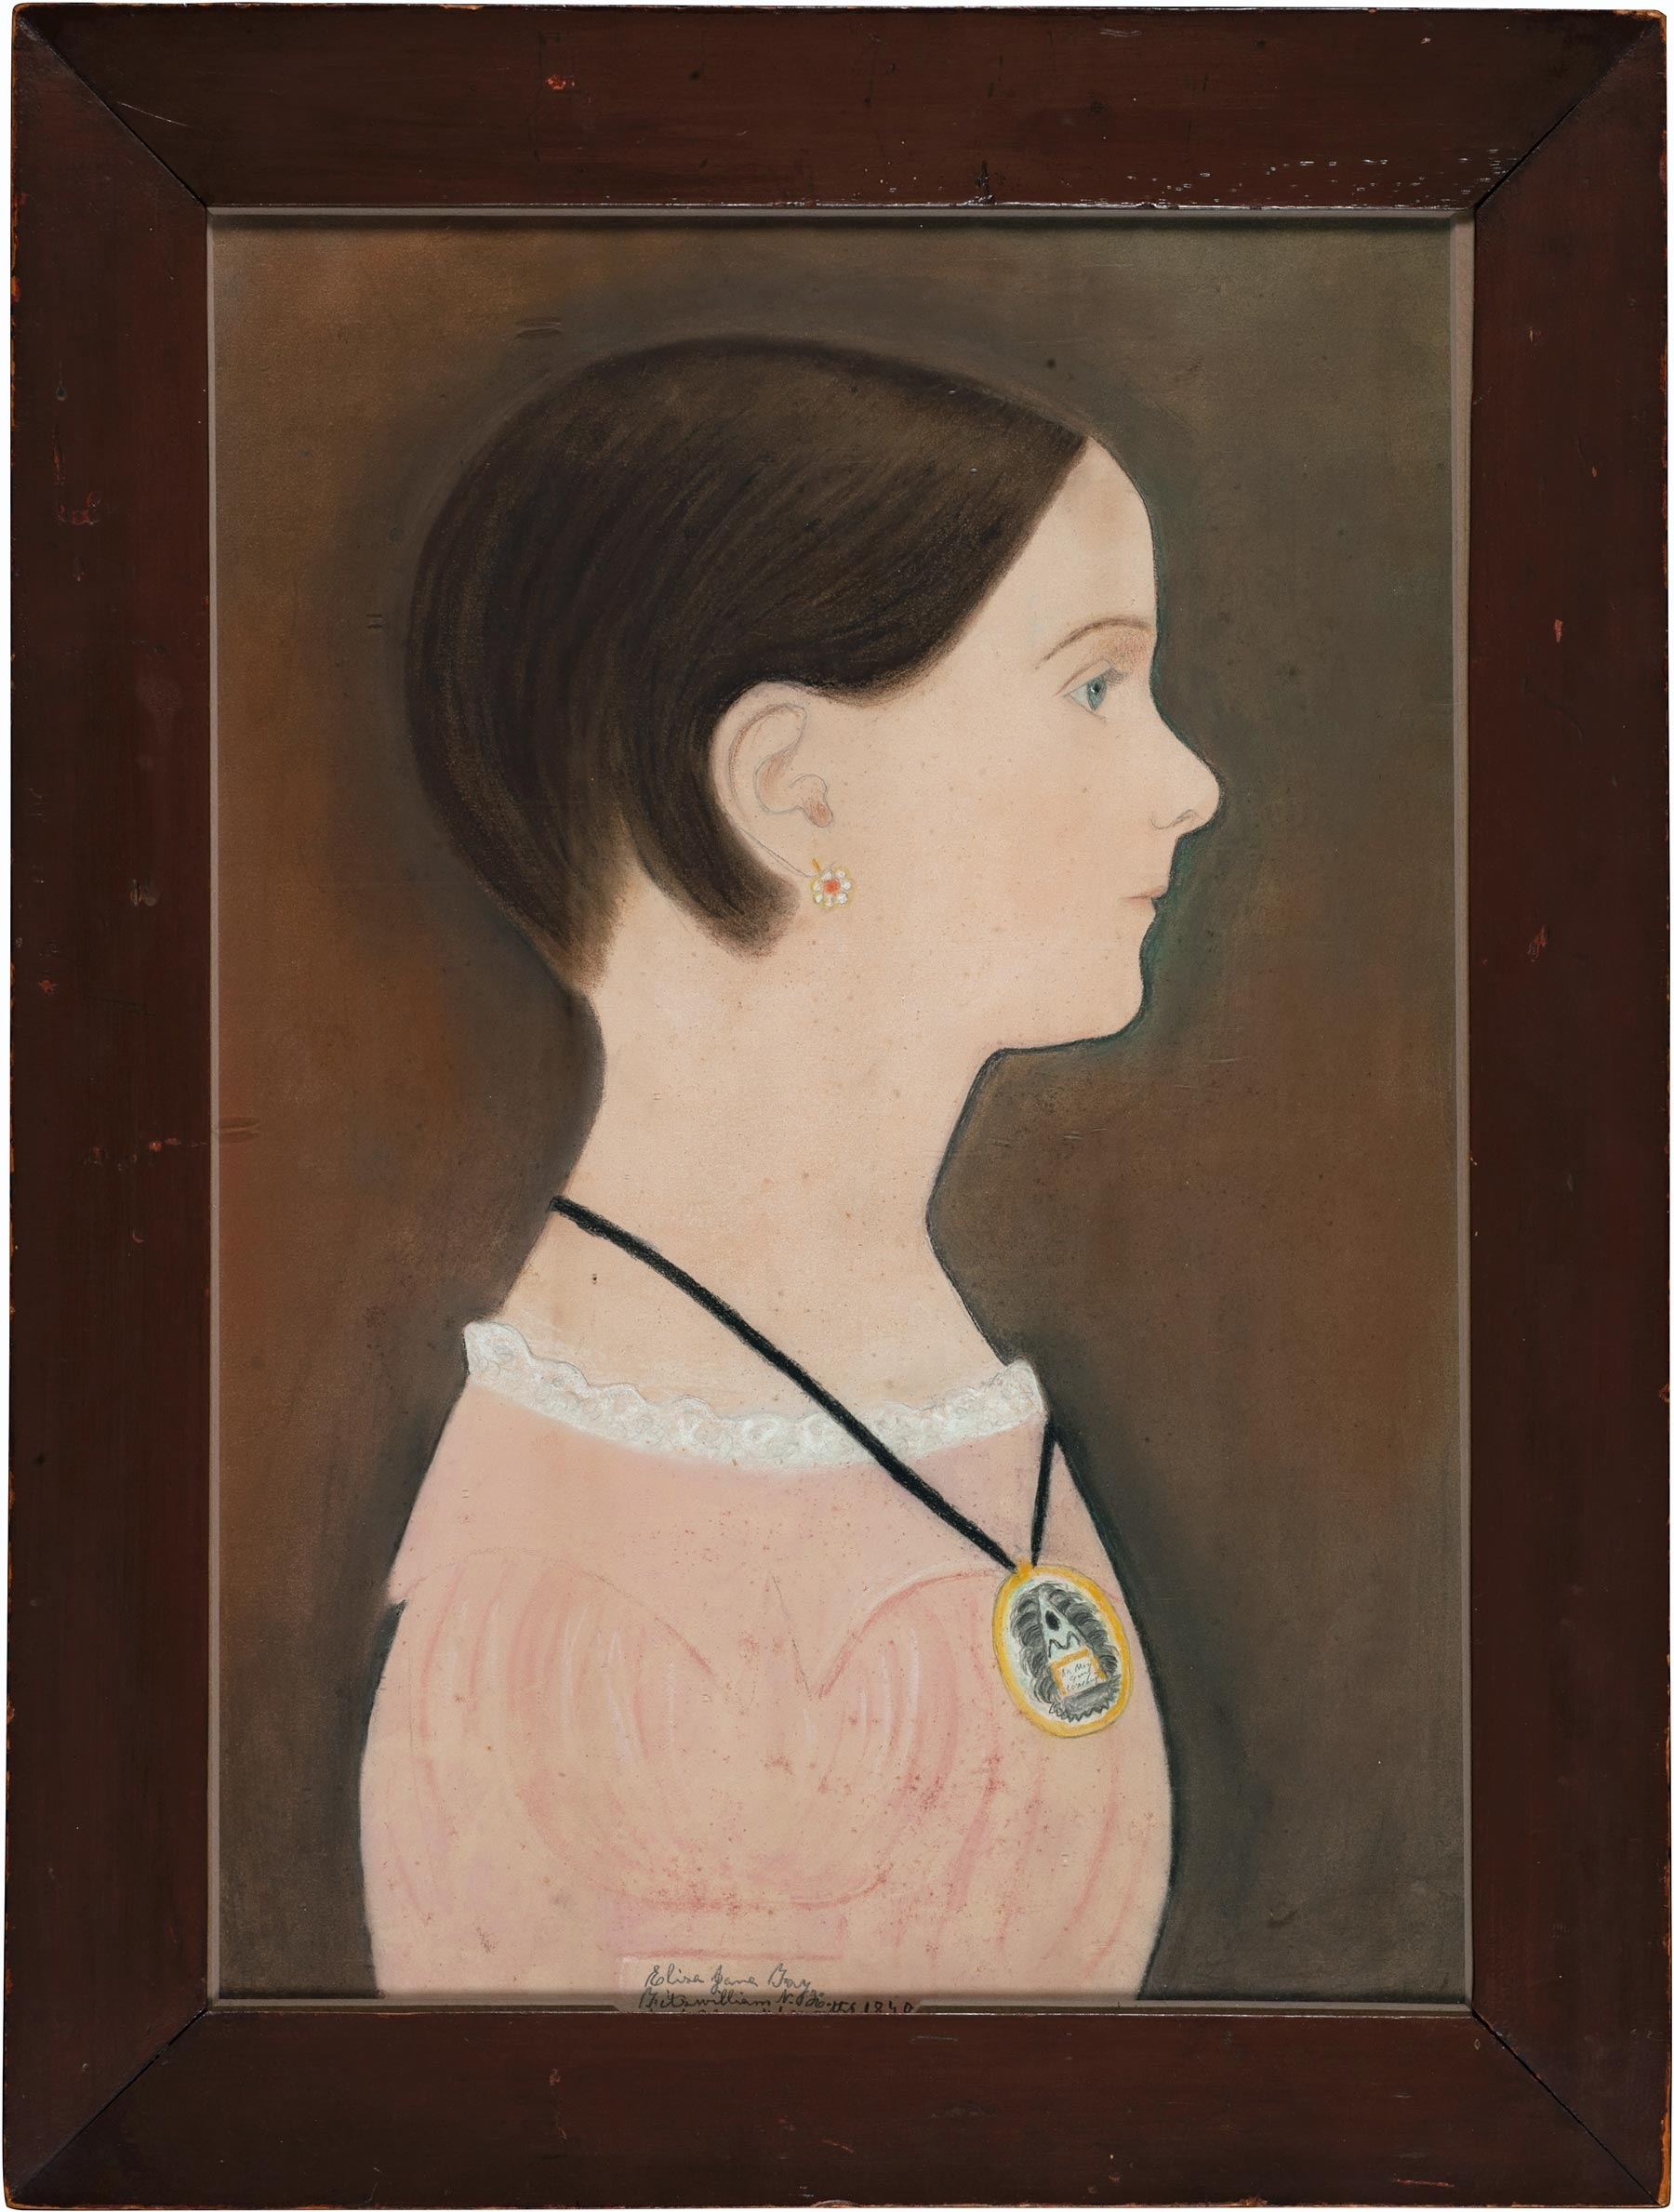 Ruth Henshaw Bascom (1772-1848), Portrait of Eliza Jane Fay, 1840. Pastel and pencil on paper, 21 ¼ × 16 × 1 in. (54 × 40.6 × 2.5 cm). Fenimore Art Museum, Gift of Stephen C. Clark, N0288.1961.